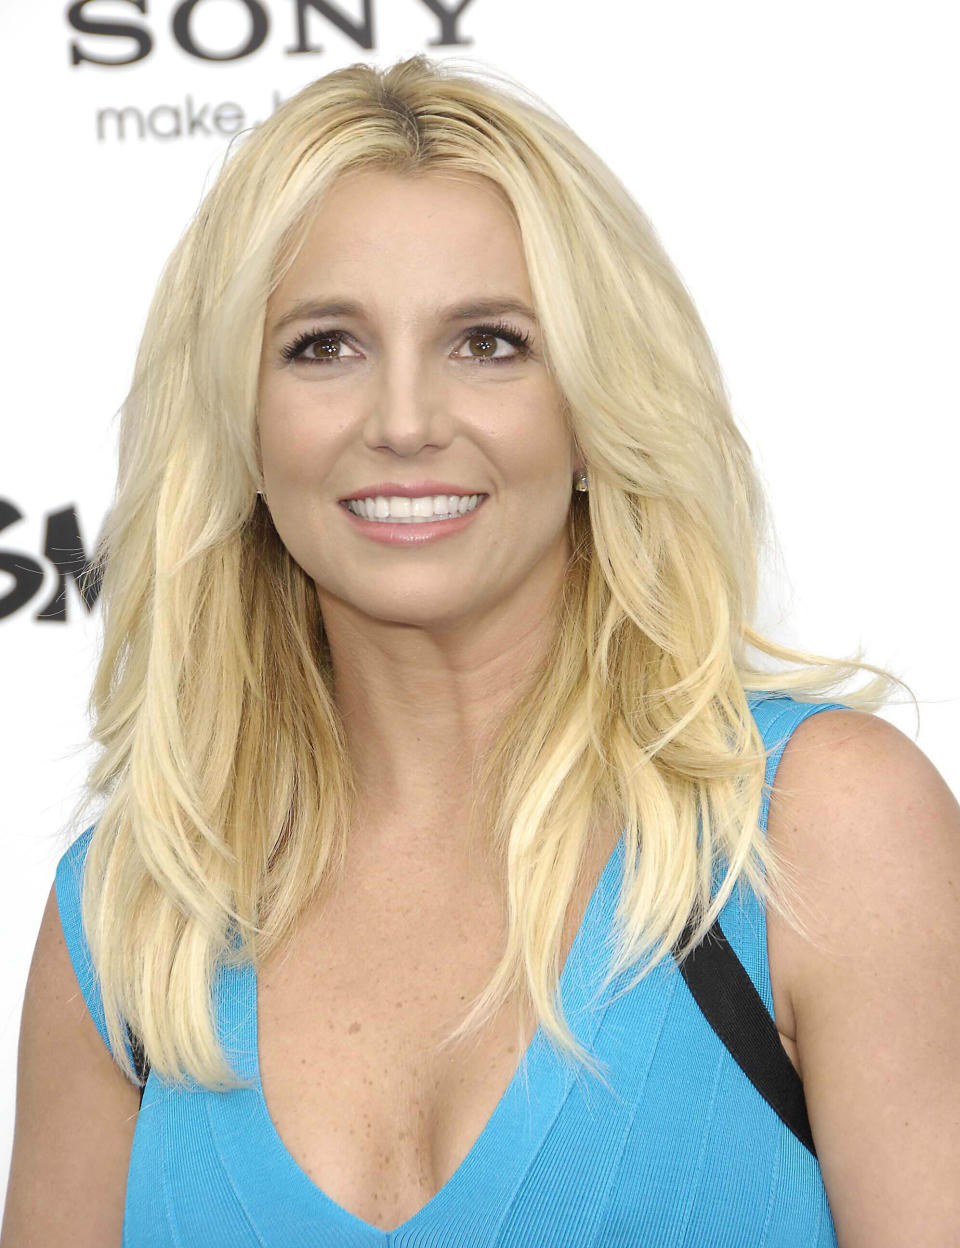 Photo by: Michael Germana/STAR MAX/IPx 2021 7/14/21 Britney Spears wins in conservatorship case as judge allows her to hire her own attorney. STAR MAX File Photo: 7/28/13 Britney Spears during the premiere of 'The Smurfs 2' in Los Angeles, CA.